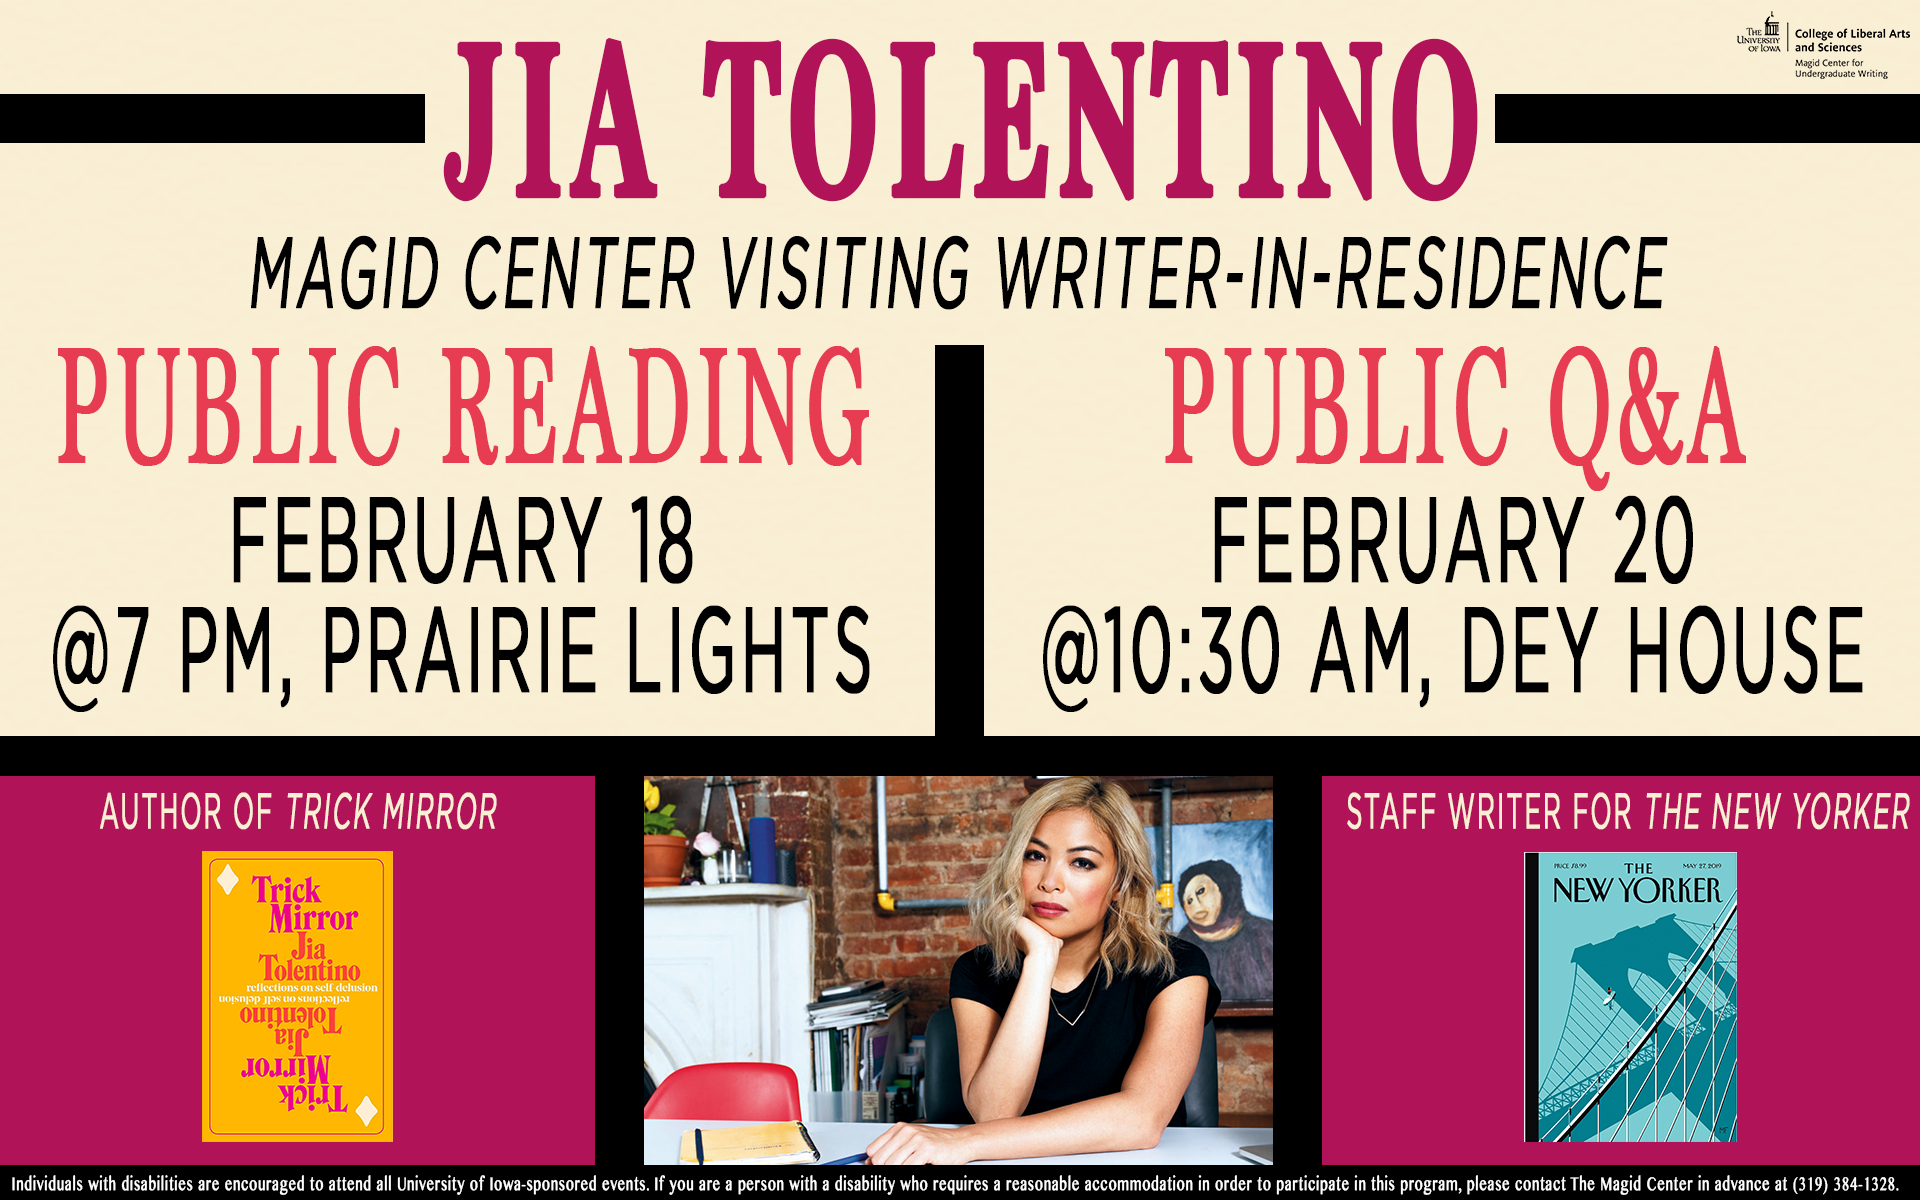 Flyer for the Jia Tolentino Q & A